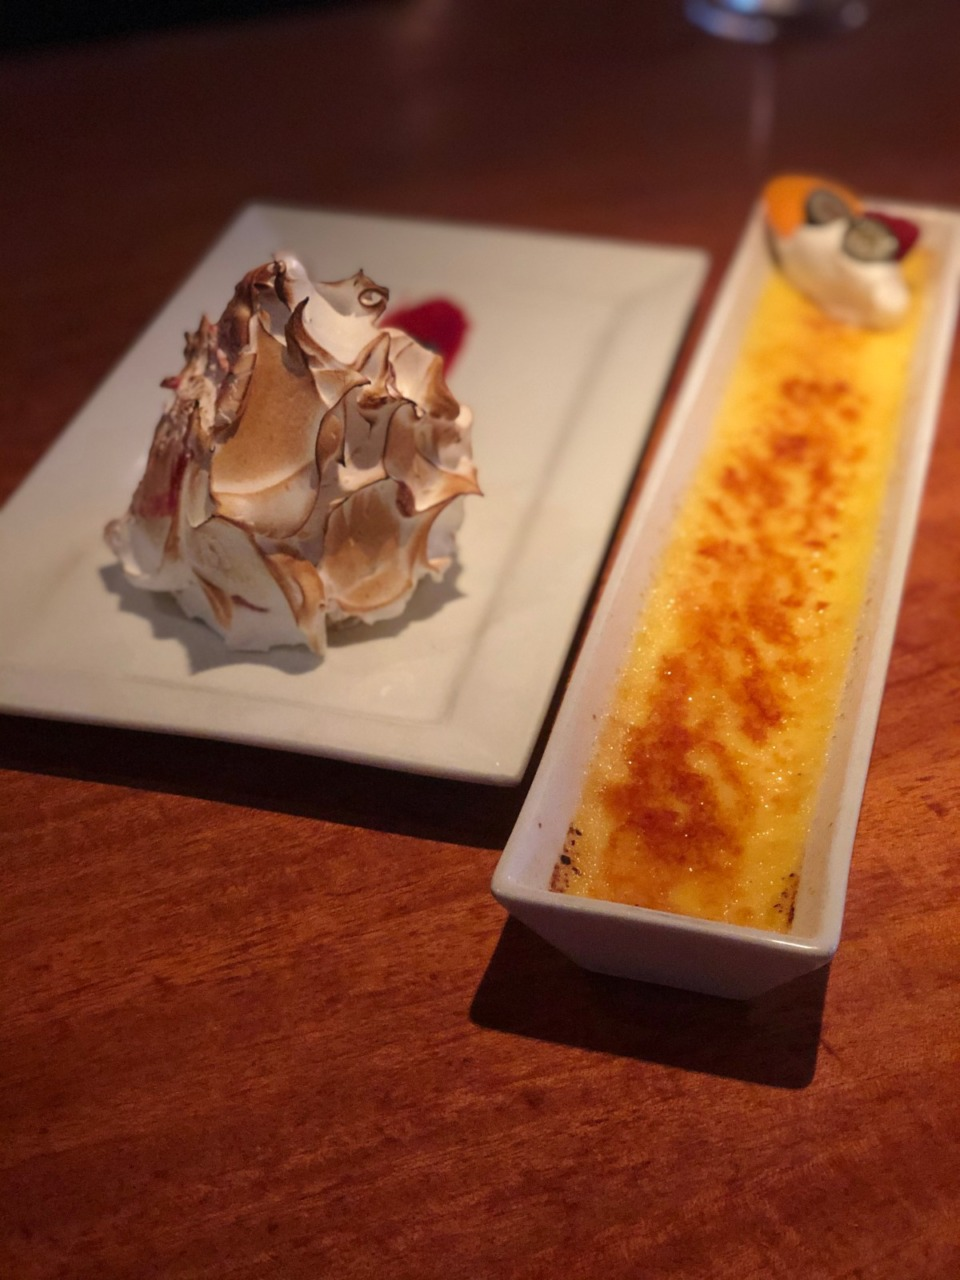 <strong>Baked Alaska and cr&egrave;me br&ucirc;l&eacute;e are two of the dessert choices at River Oaks Restaurant.</strong> (Jennifer Biggs/Daily Memphian)